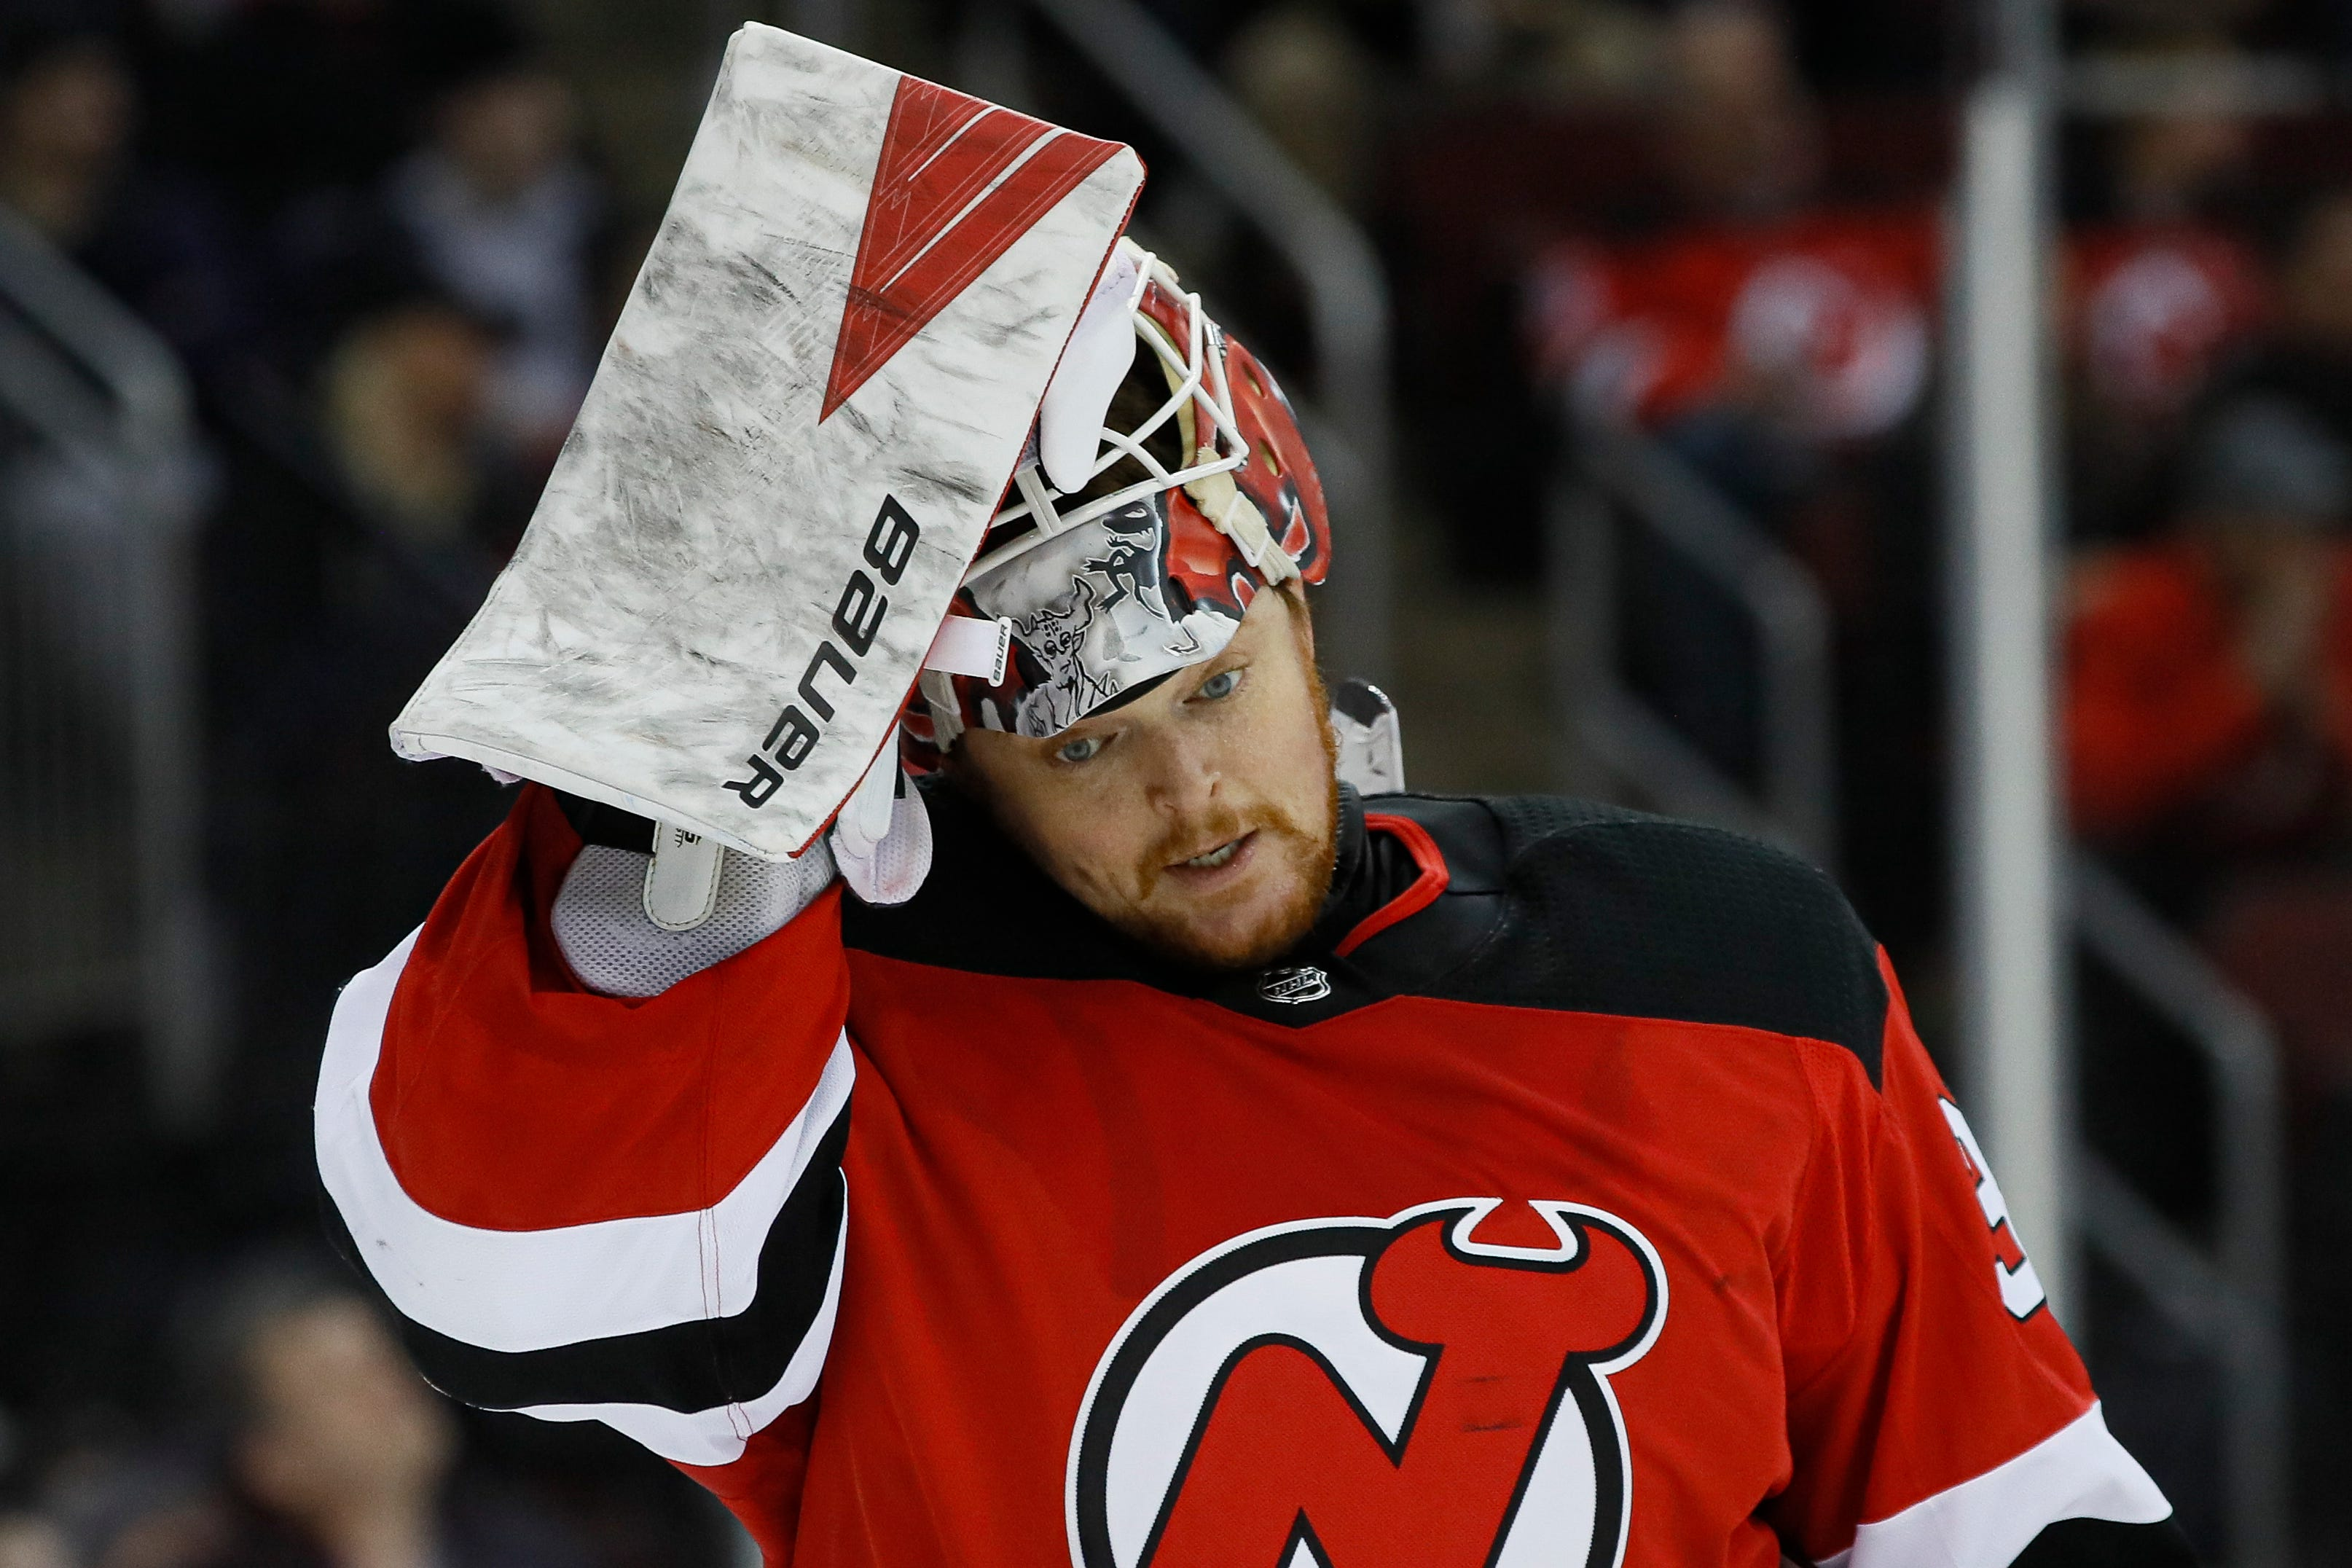 NJ Devils' goalie Cory Schneider dealing with life in limbo in the NHL